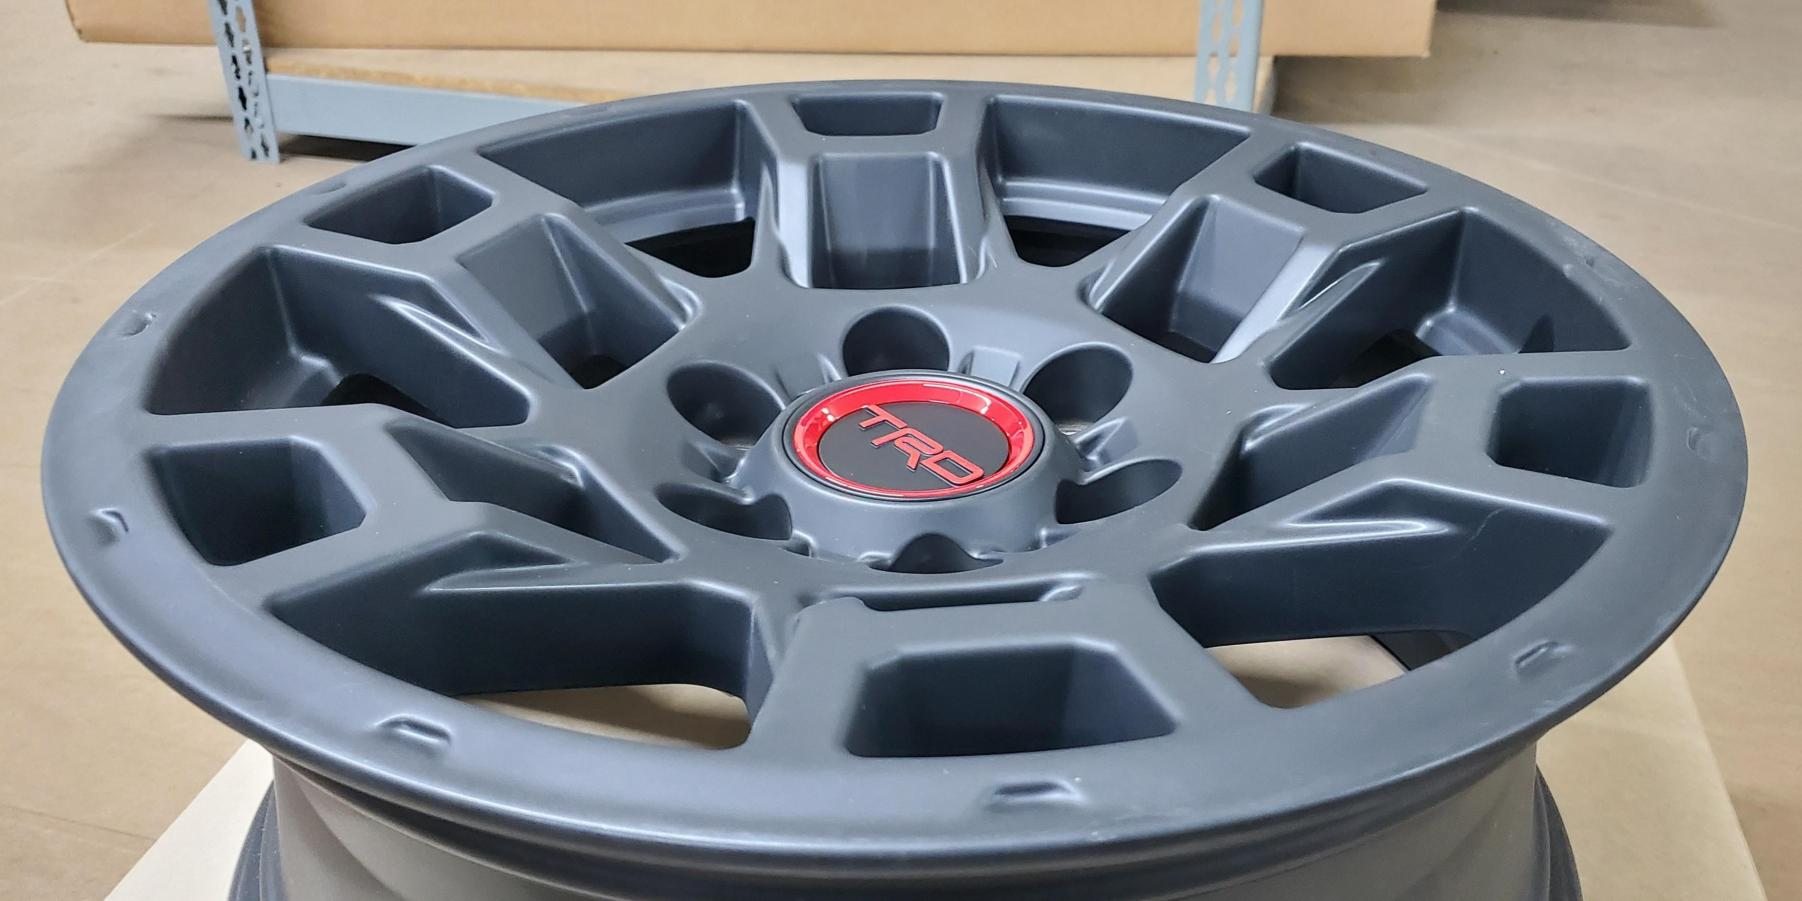 Pictures of the new 2021 trd pro wheels-6-jpg